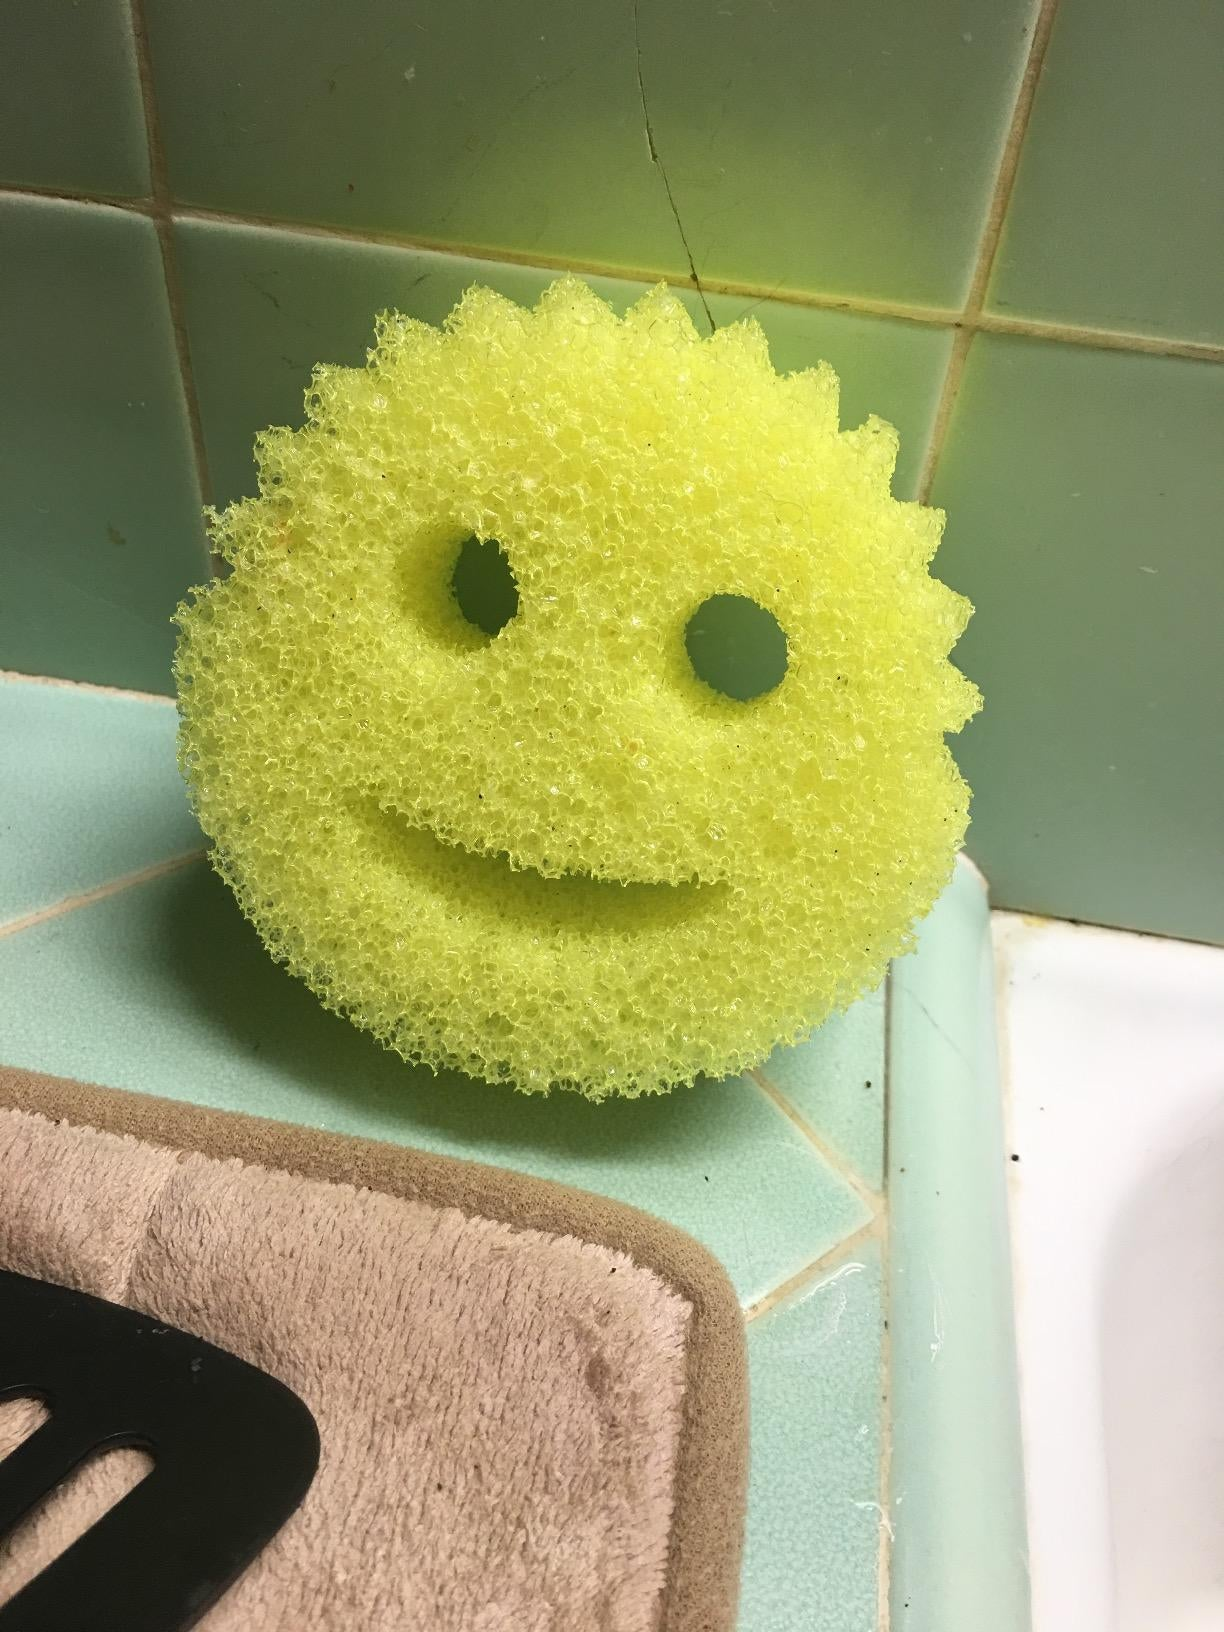 a yellow sponge that looks like a smiley face